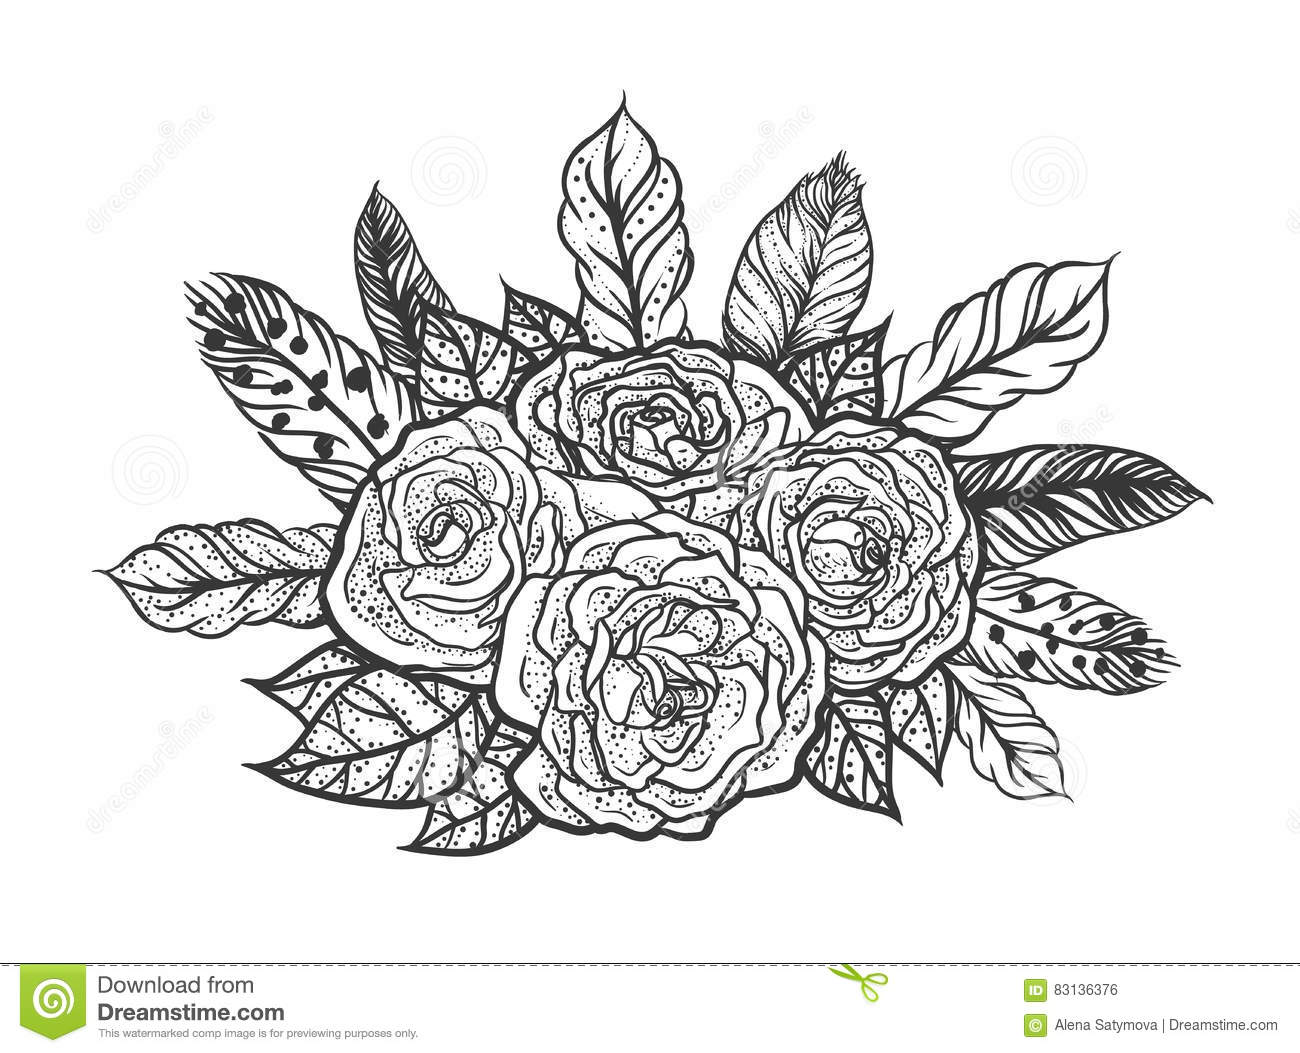 Tatouage De Blackwork De Bouquet Rose Et De Plumes Dessins De